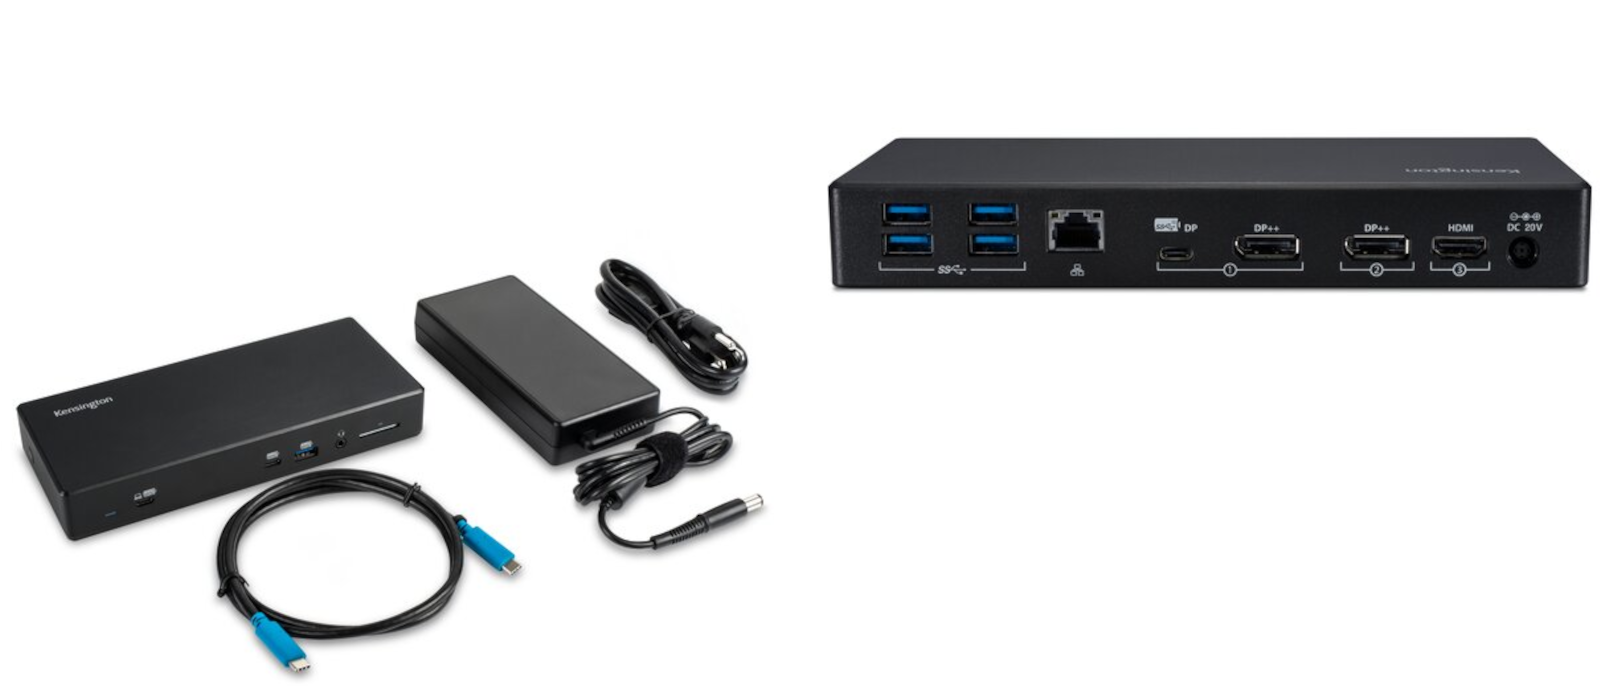 Two pictures show the overall view of the Kensington USB-C & USB-A Dual 4K Docking Station including cables as well as the rear view of the docking station